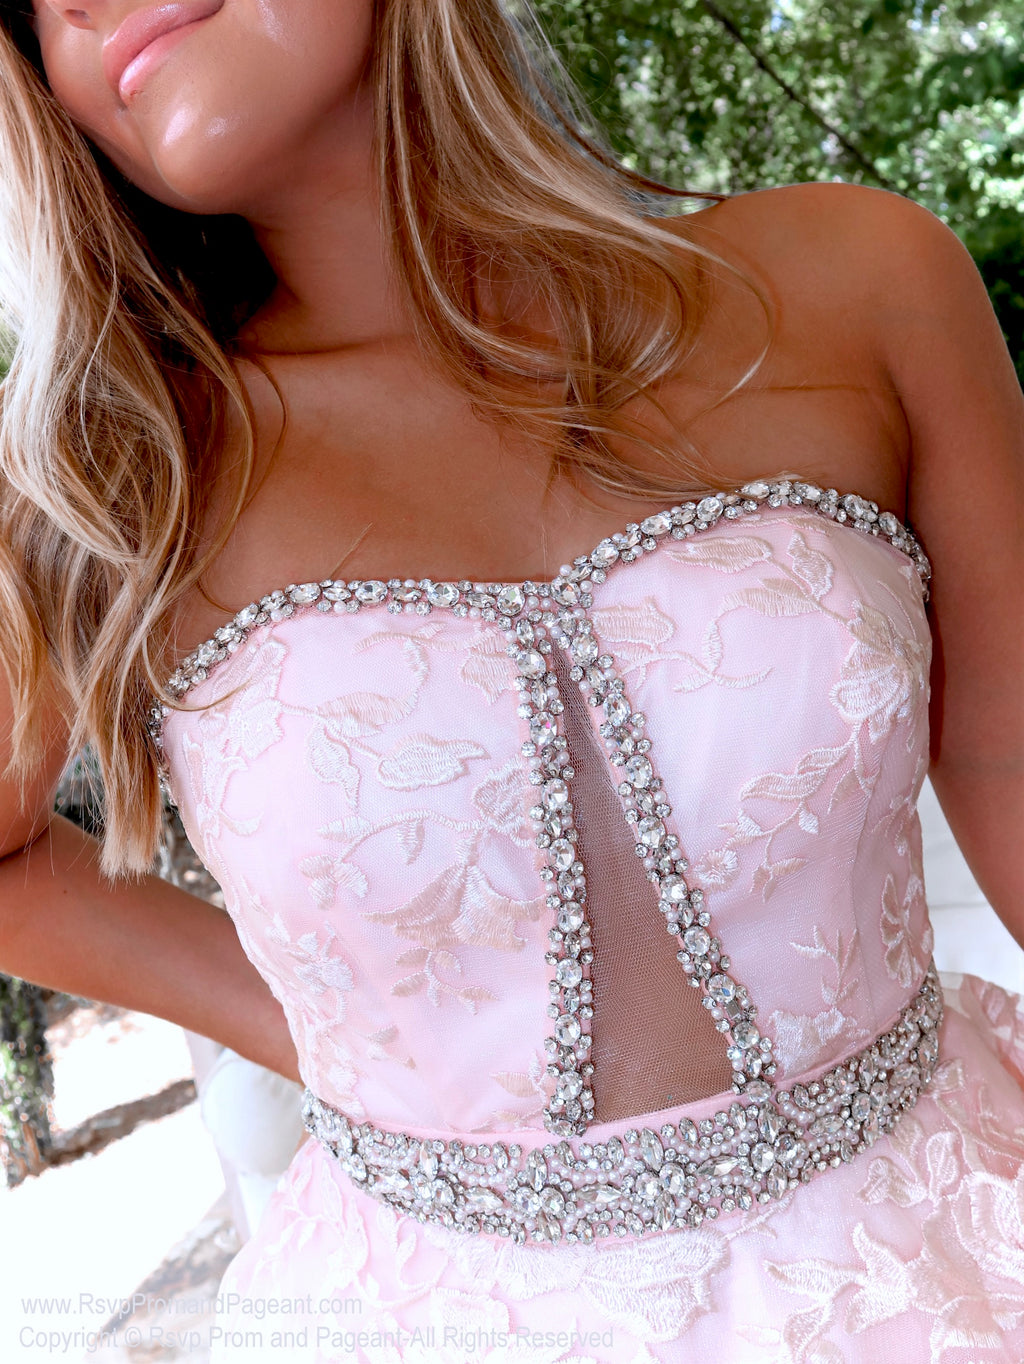 Closeup of model in absolutely stunning lace ball gown features a strapless sweetheart neckline and a cut out in the bodice! And it's at Rsvp Prom and Pageant, your source for the HOTTEST Prom and Pageant Dresses, located in Atlanta, Georgia!